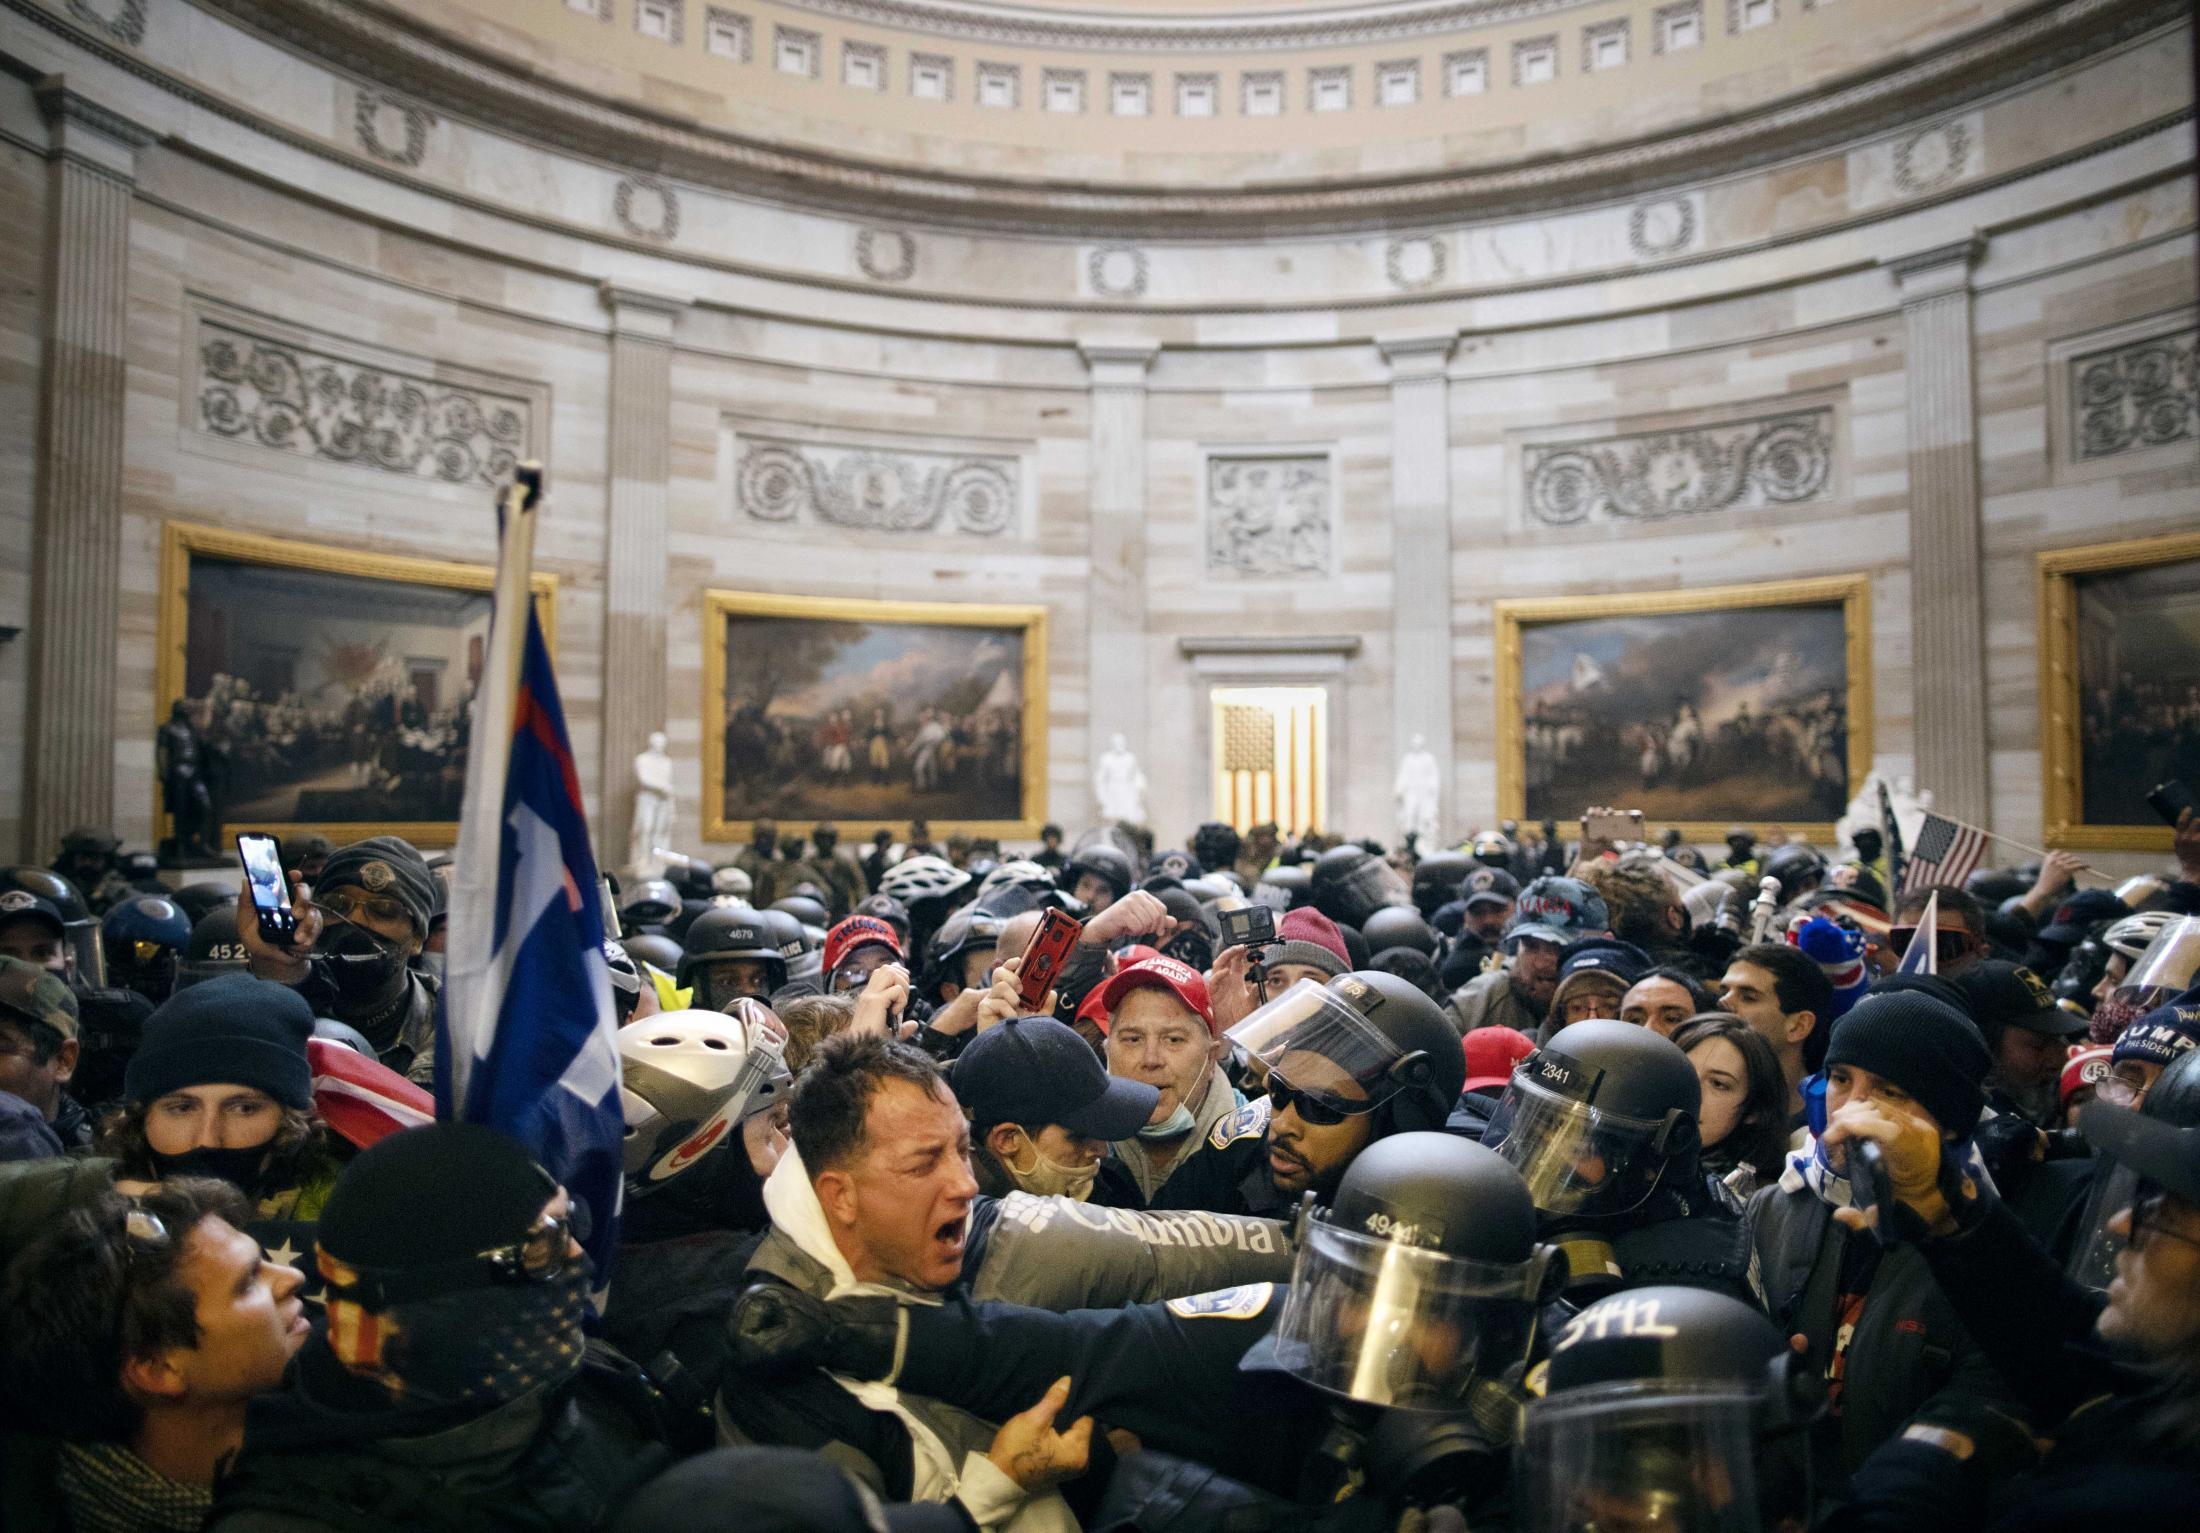 Police clash with supporters of US President Donald Trump who breached security and entered the Capitol building. January 6, 2021.